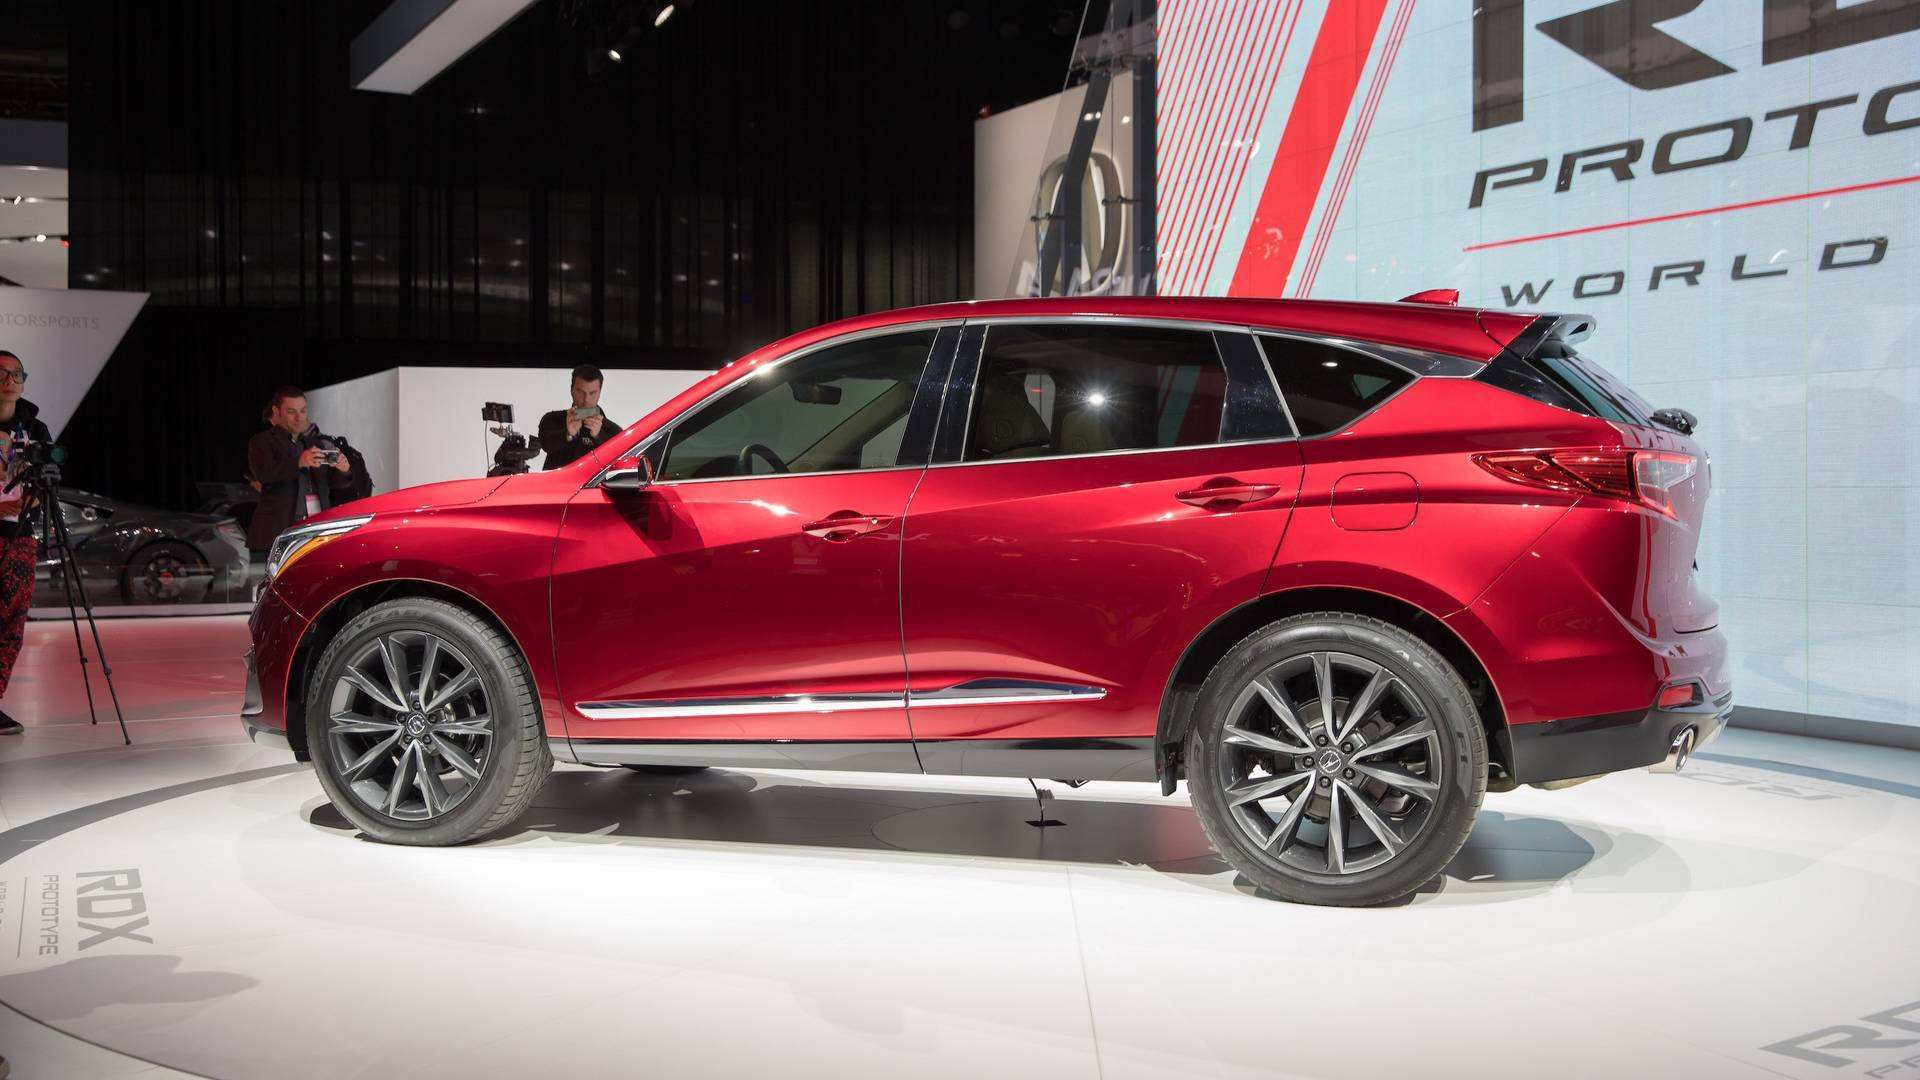 76 Best Review 2019 Acura Rdx Concept Photos with 2019 Acura Rdx Concept